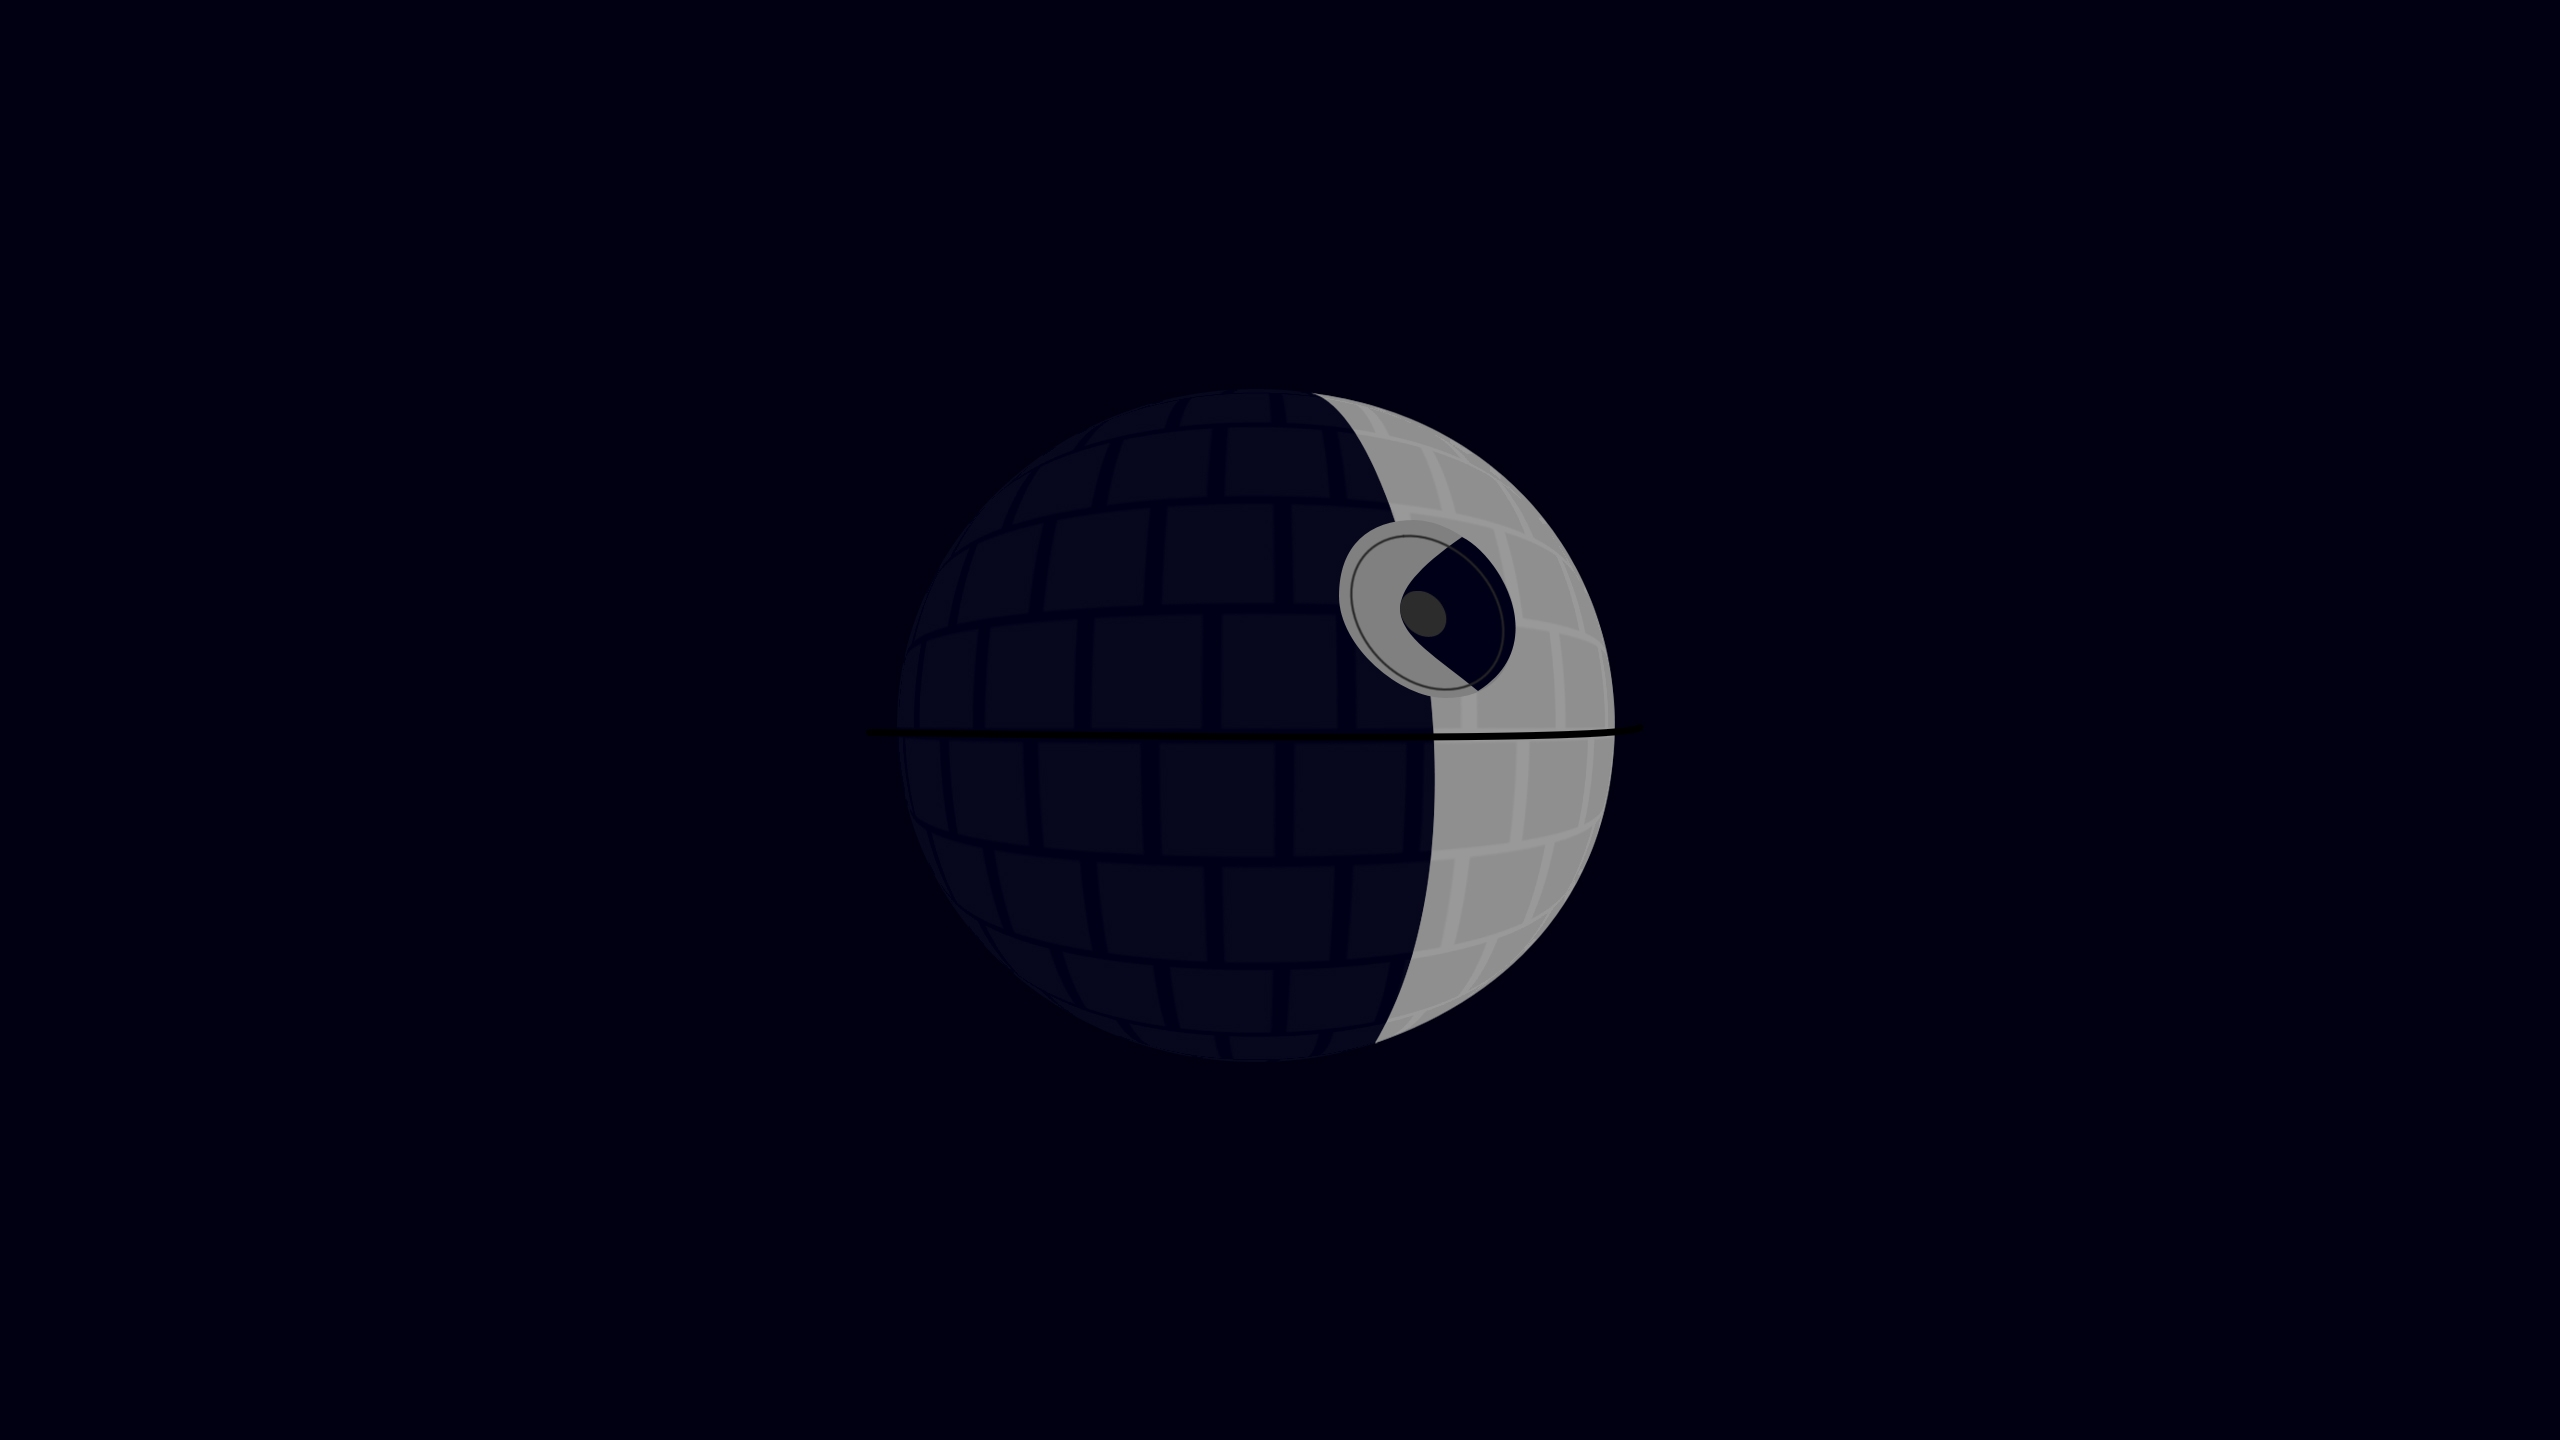 Death Star In The Shadows